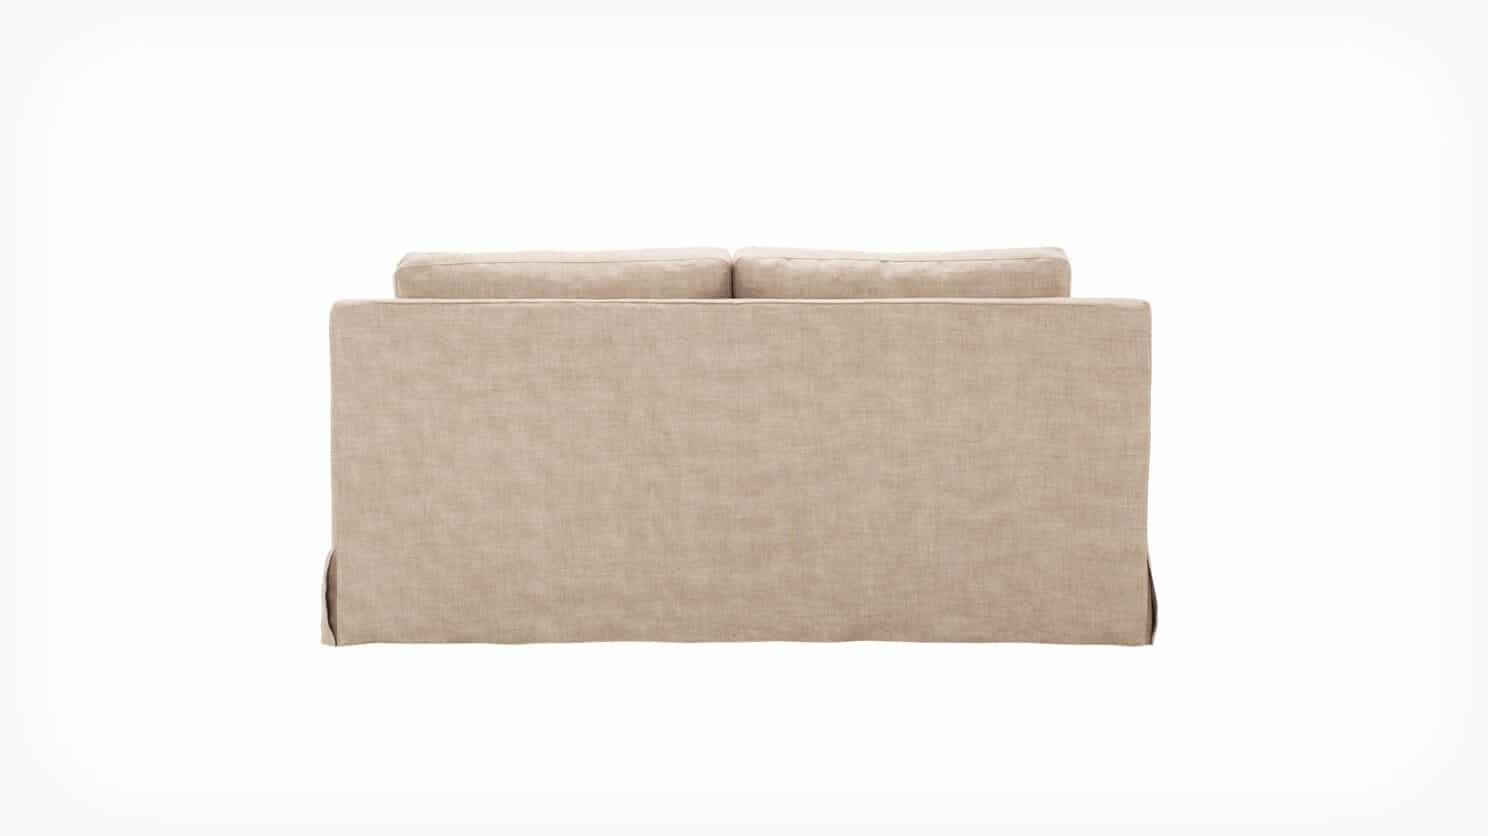 32113 03 04 loveseat slipcover blanche back view